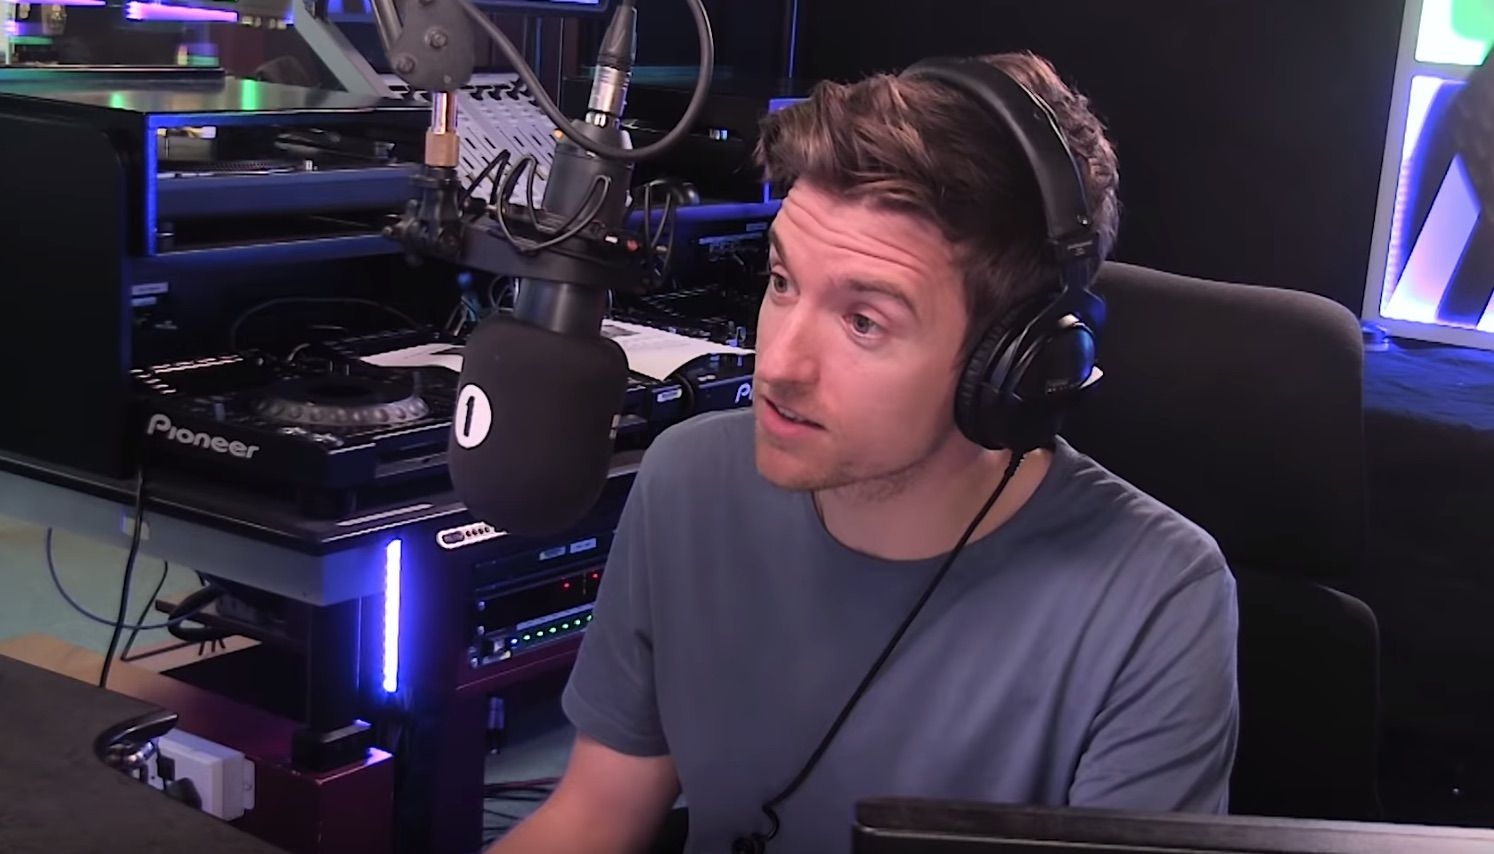 BBC Radio 1's Greg James reveals the big life change he's made since filming new show